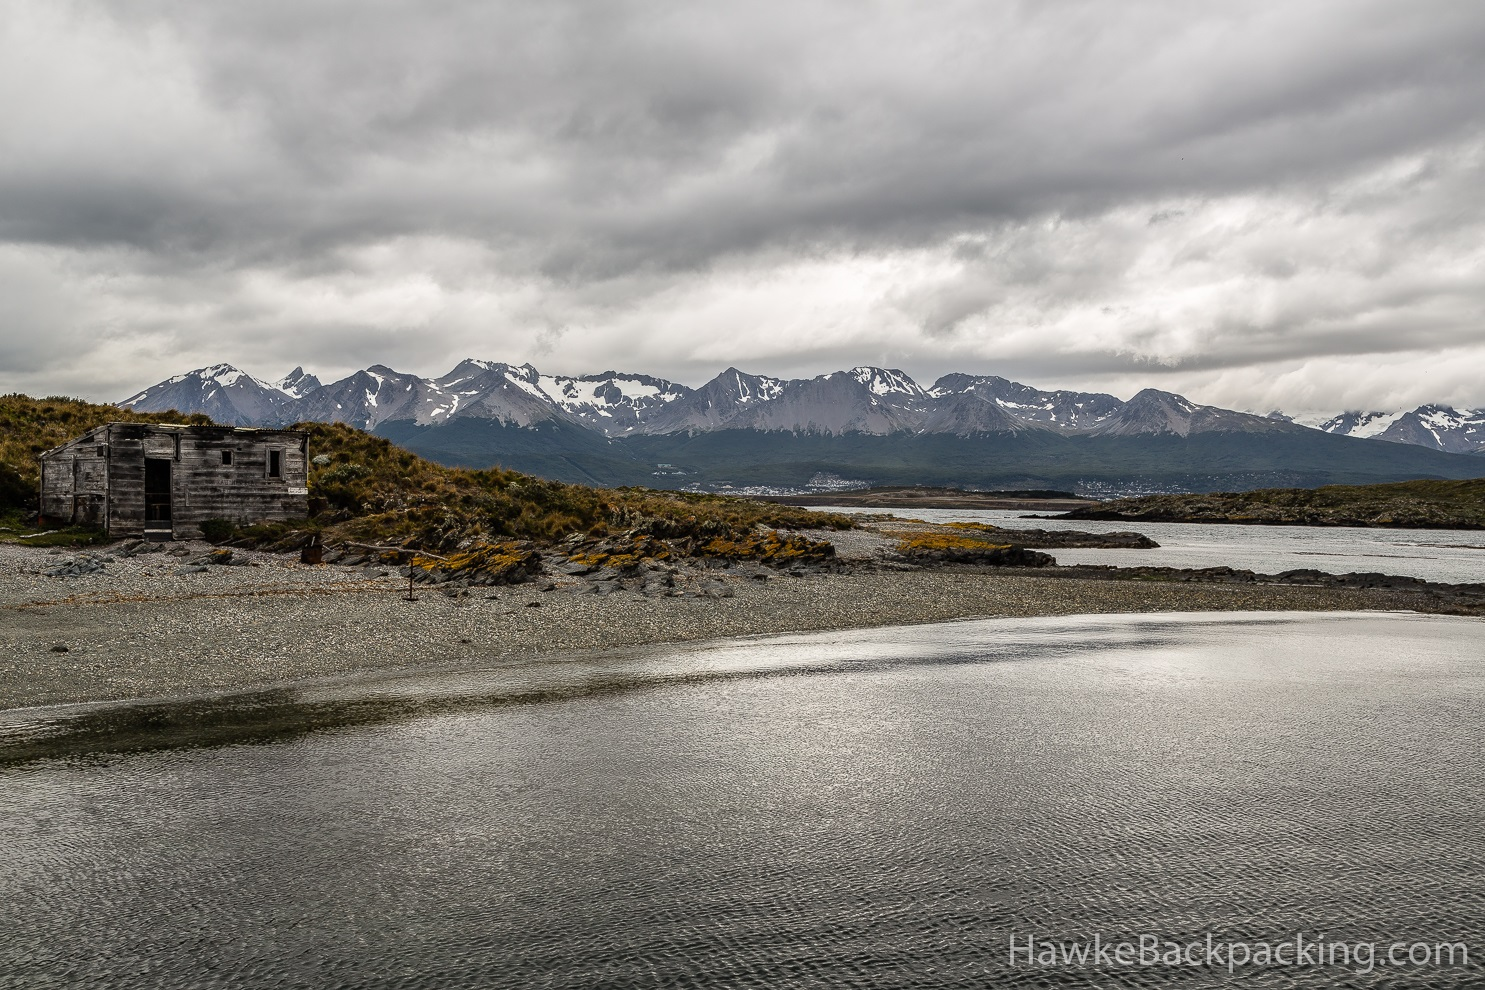 Ushuaia Hawkebackpacking Com